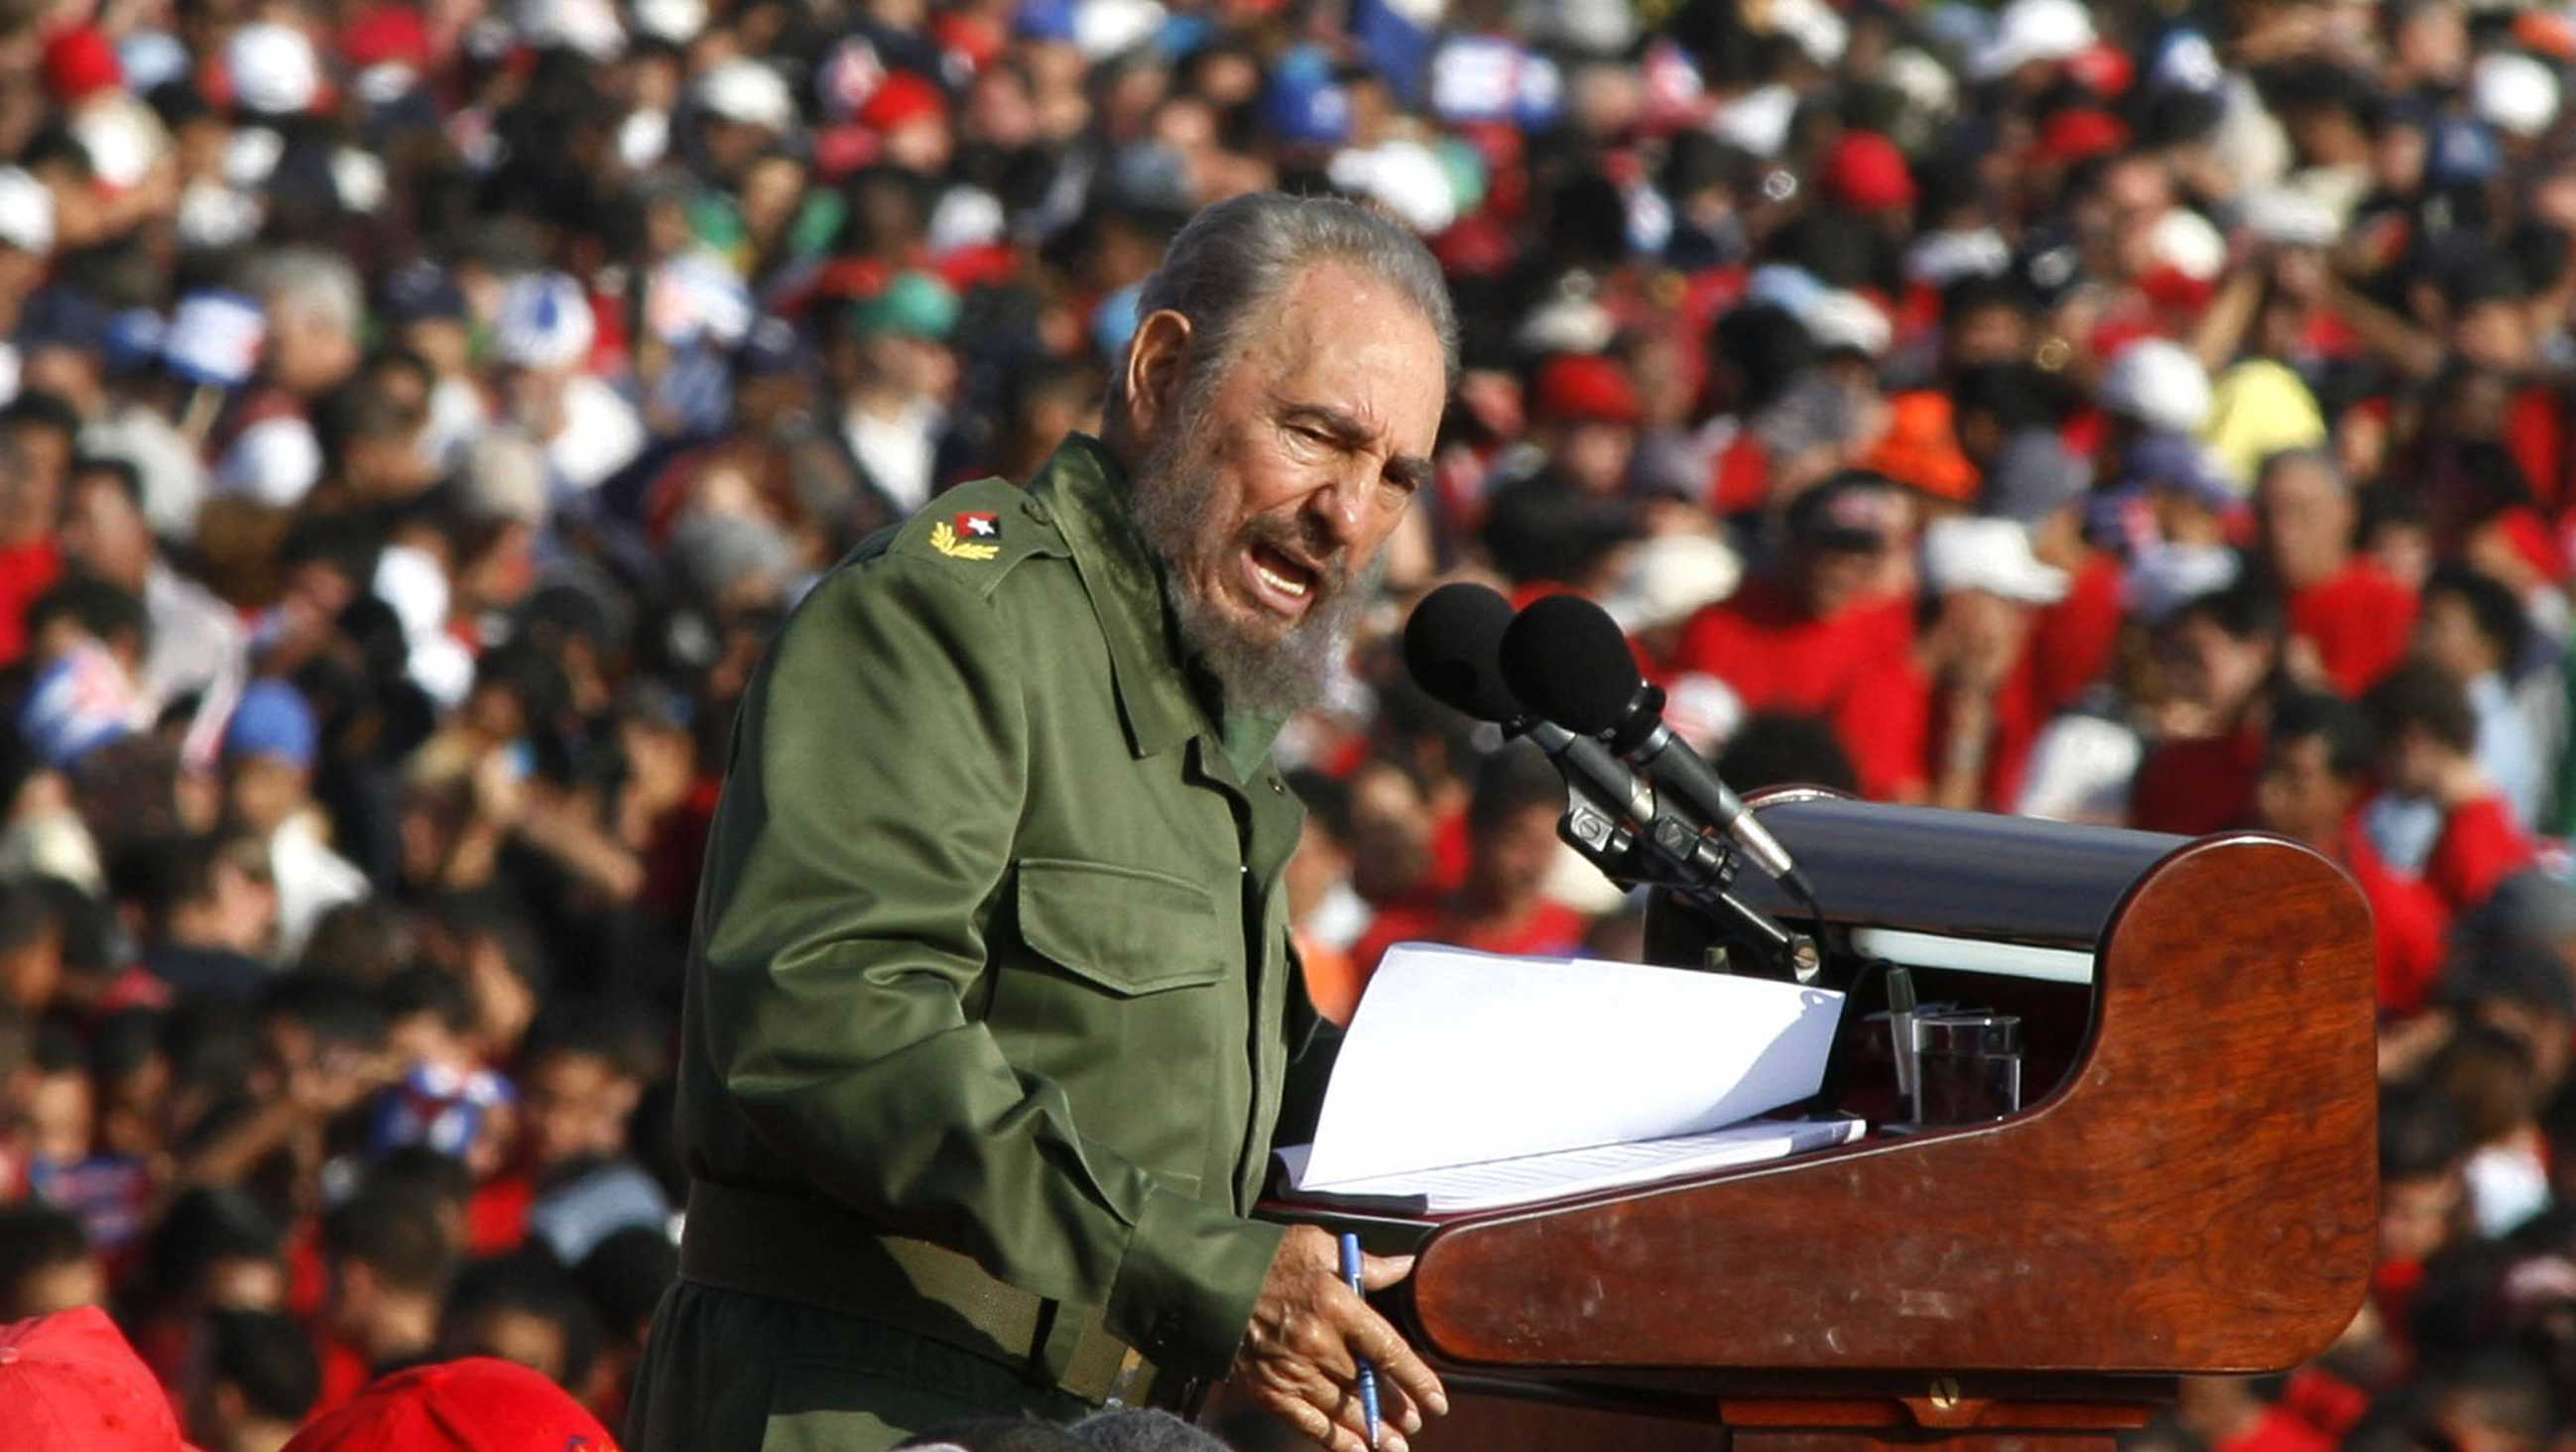 In this May 1, 2006 file photo, Cuba's leader Fidel Castro speaks on International Workers Day in Revolution Plaza in Havana, Cuba. Former President Fidel Castro, who led a rebel army to improbable victory in Cuba, embraced Soviet-style communism and defied the power of 10 U.S. presidents during his half century rule, has died at age 90. The bearded revolutionary, who survived a crippling U.S. trade embargo as well as dozens, possibly hundreds, of assassination plots, died eight years after ill health forced him to formally hand power over to his younger brother Raul, who announced his death late Friday, Nov. 25, 2016, on state television.